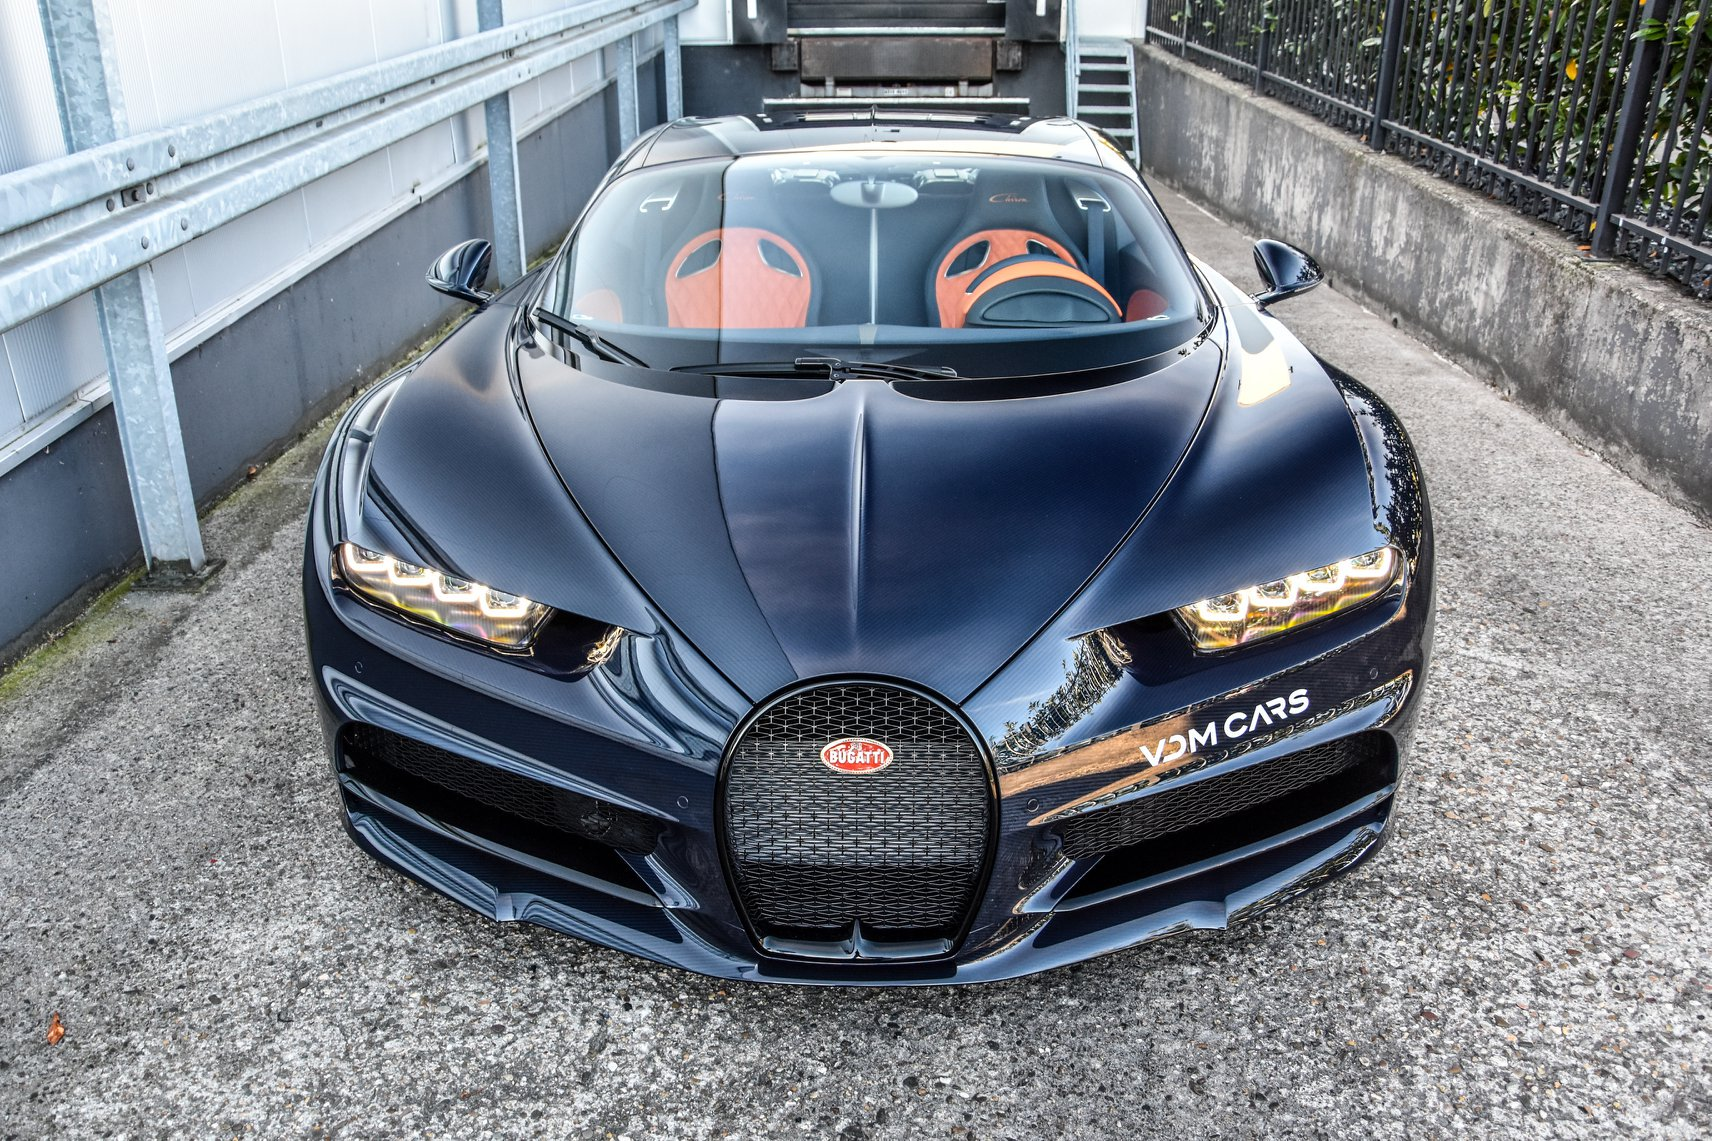 Bugatti has recently finished piecing together the 200th Chiron and reported that it had fewer than 100 units left in the production queue. Most of those are likely sold out by now, anyway. VDM Cars, a dealership in Gronau, Germany, has a better offer.